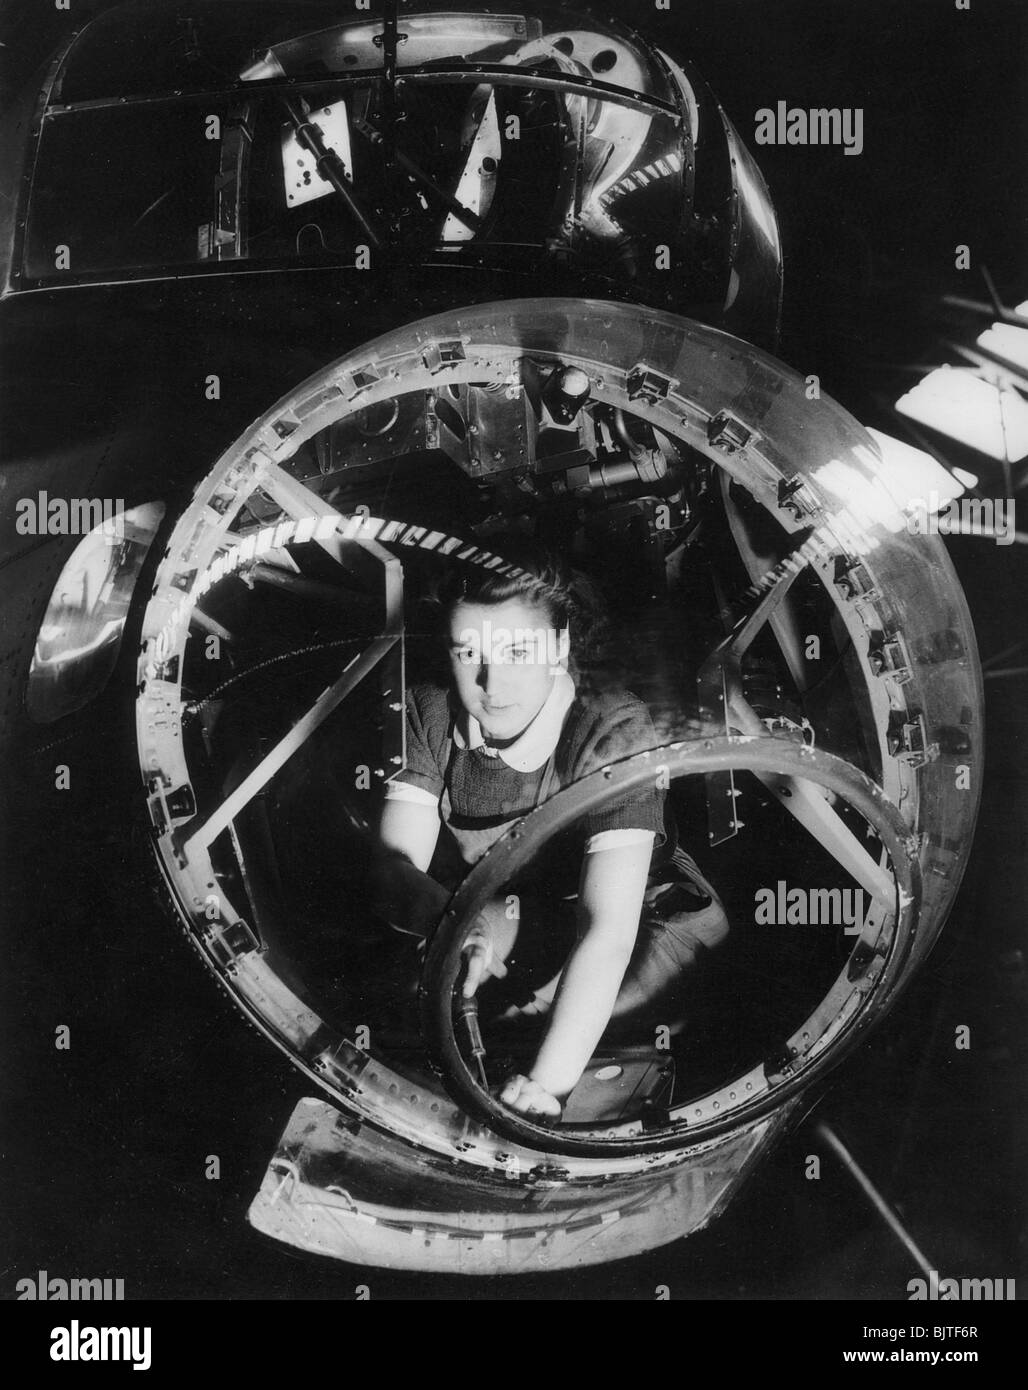 A woman working on a Lancaster bomber, Second World War, 1940s. - Stock Image